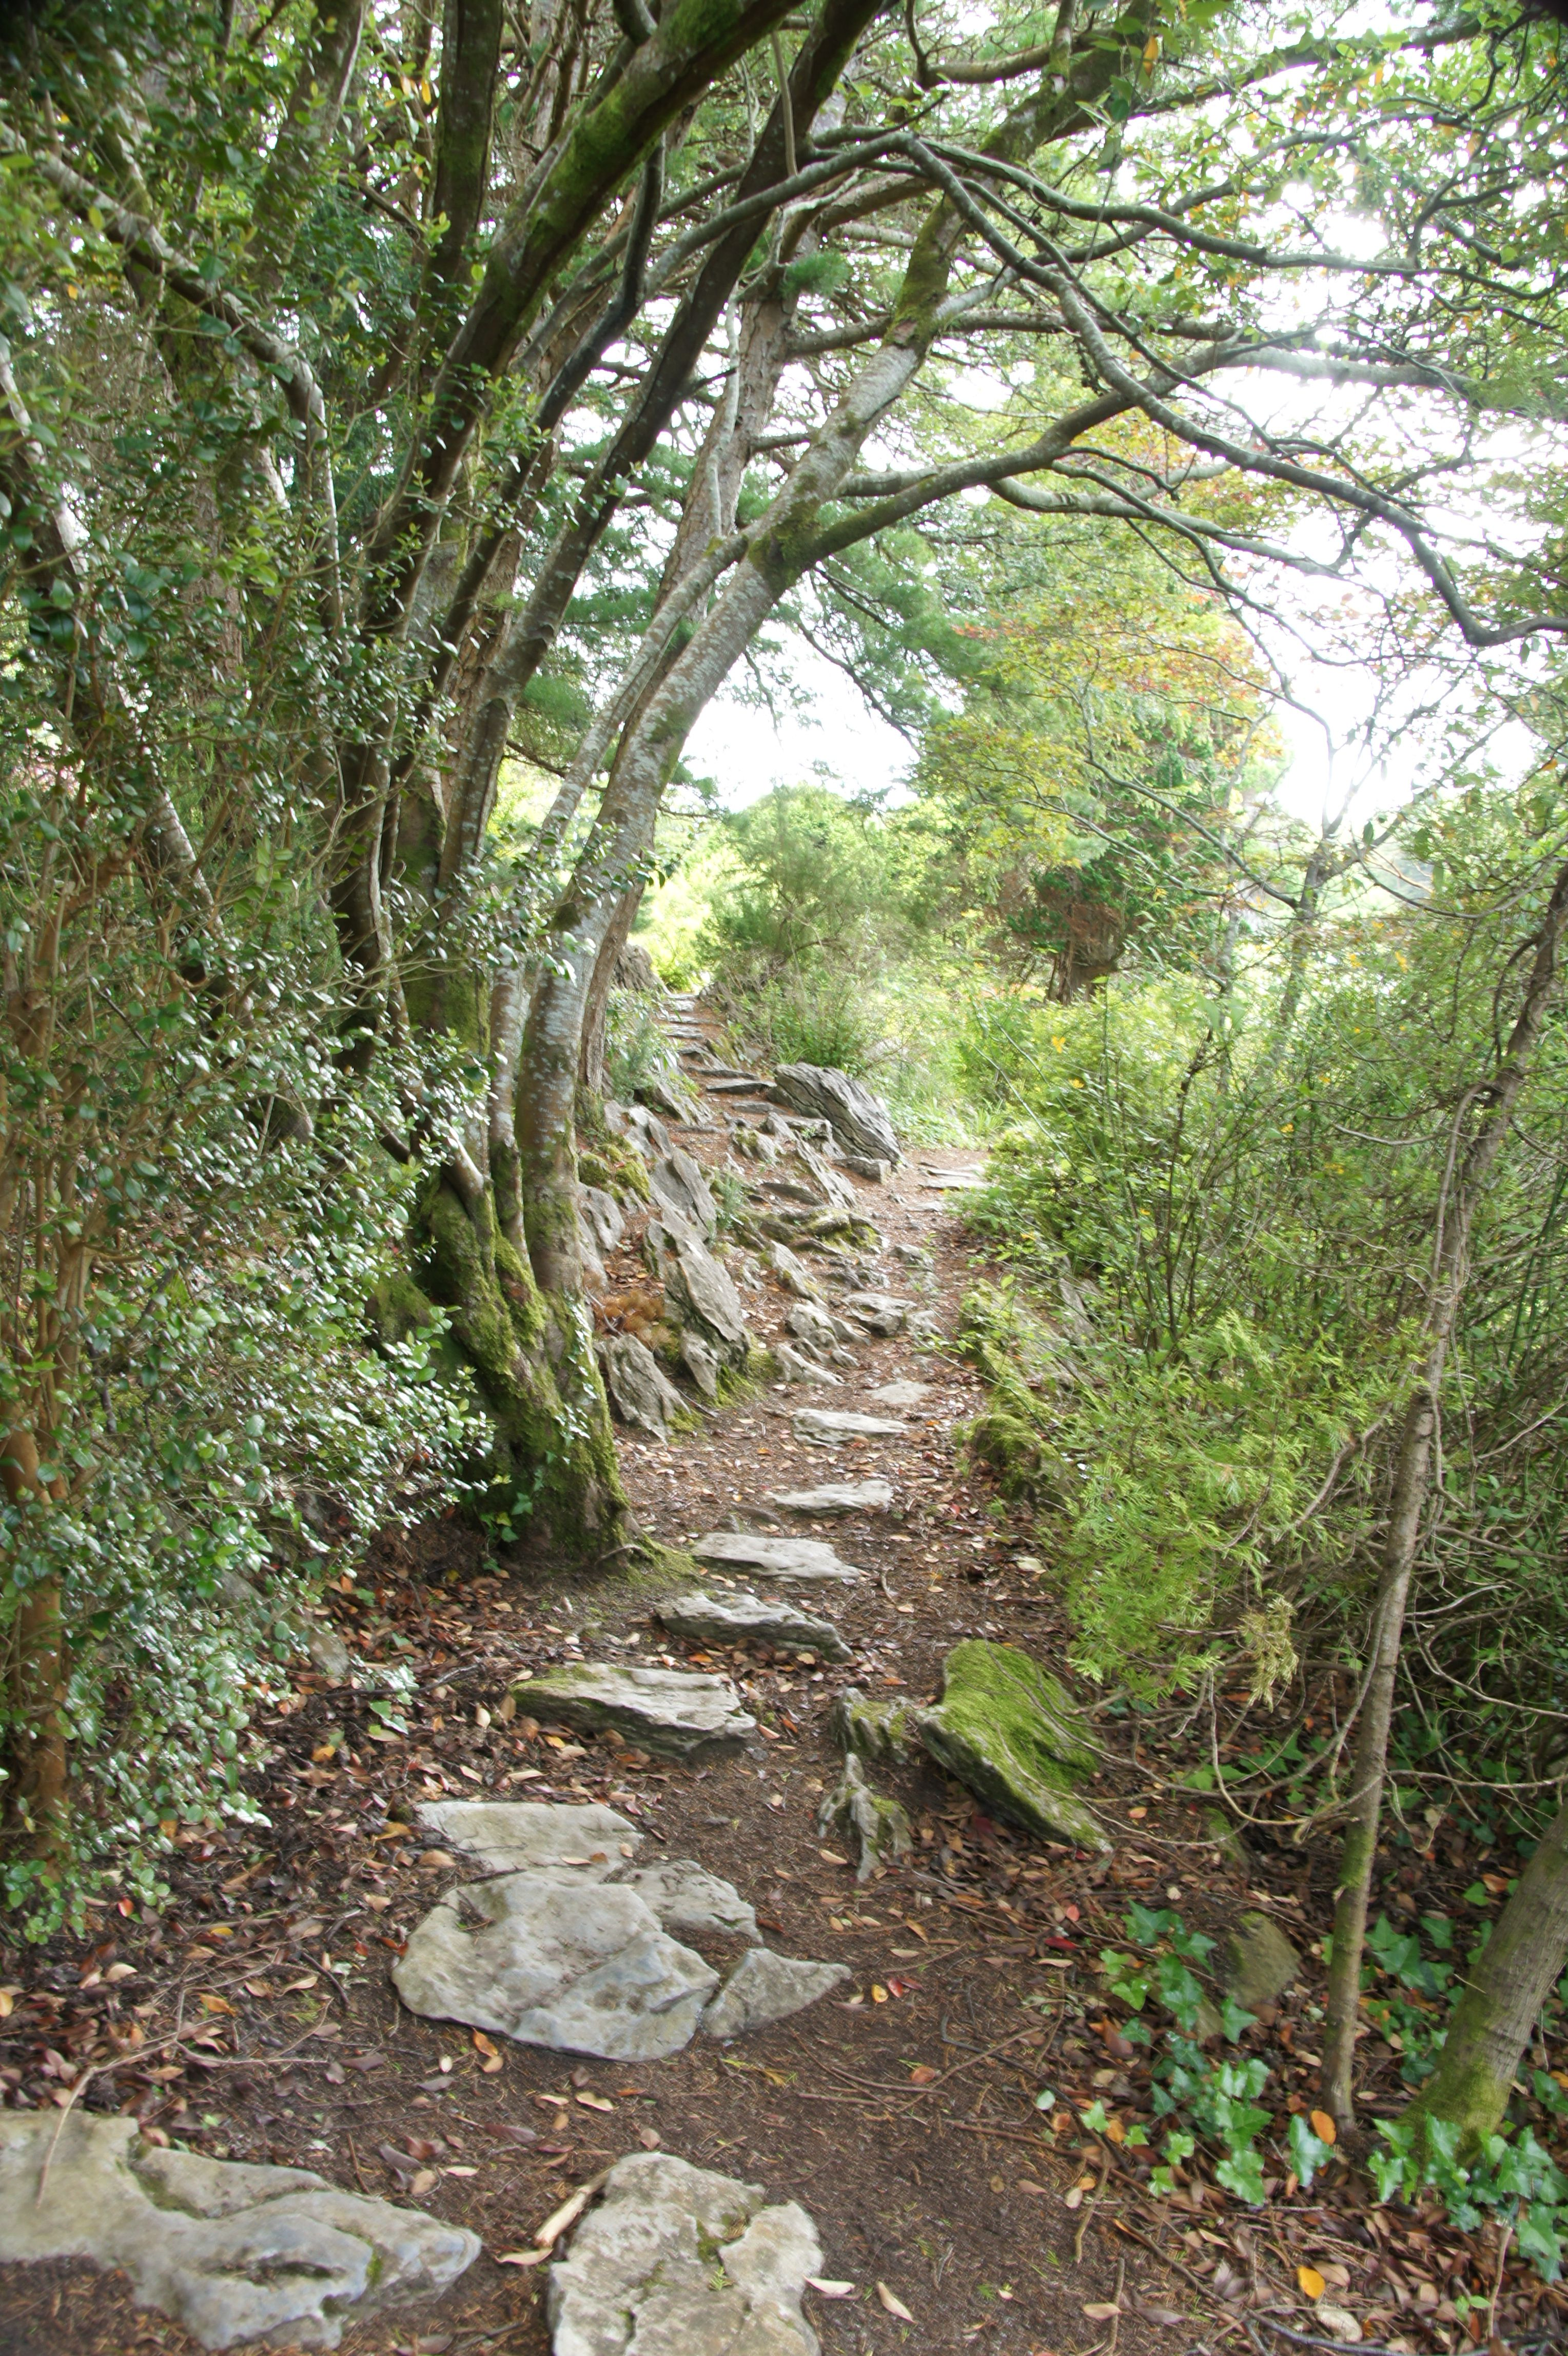 Ireland Kerry - I would LOVE to be going for a walk on this path!